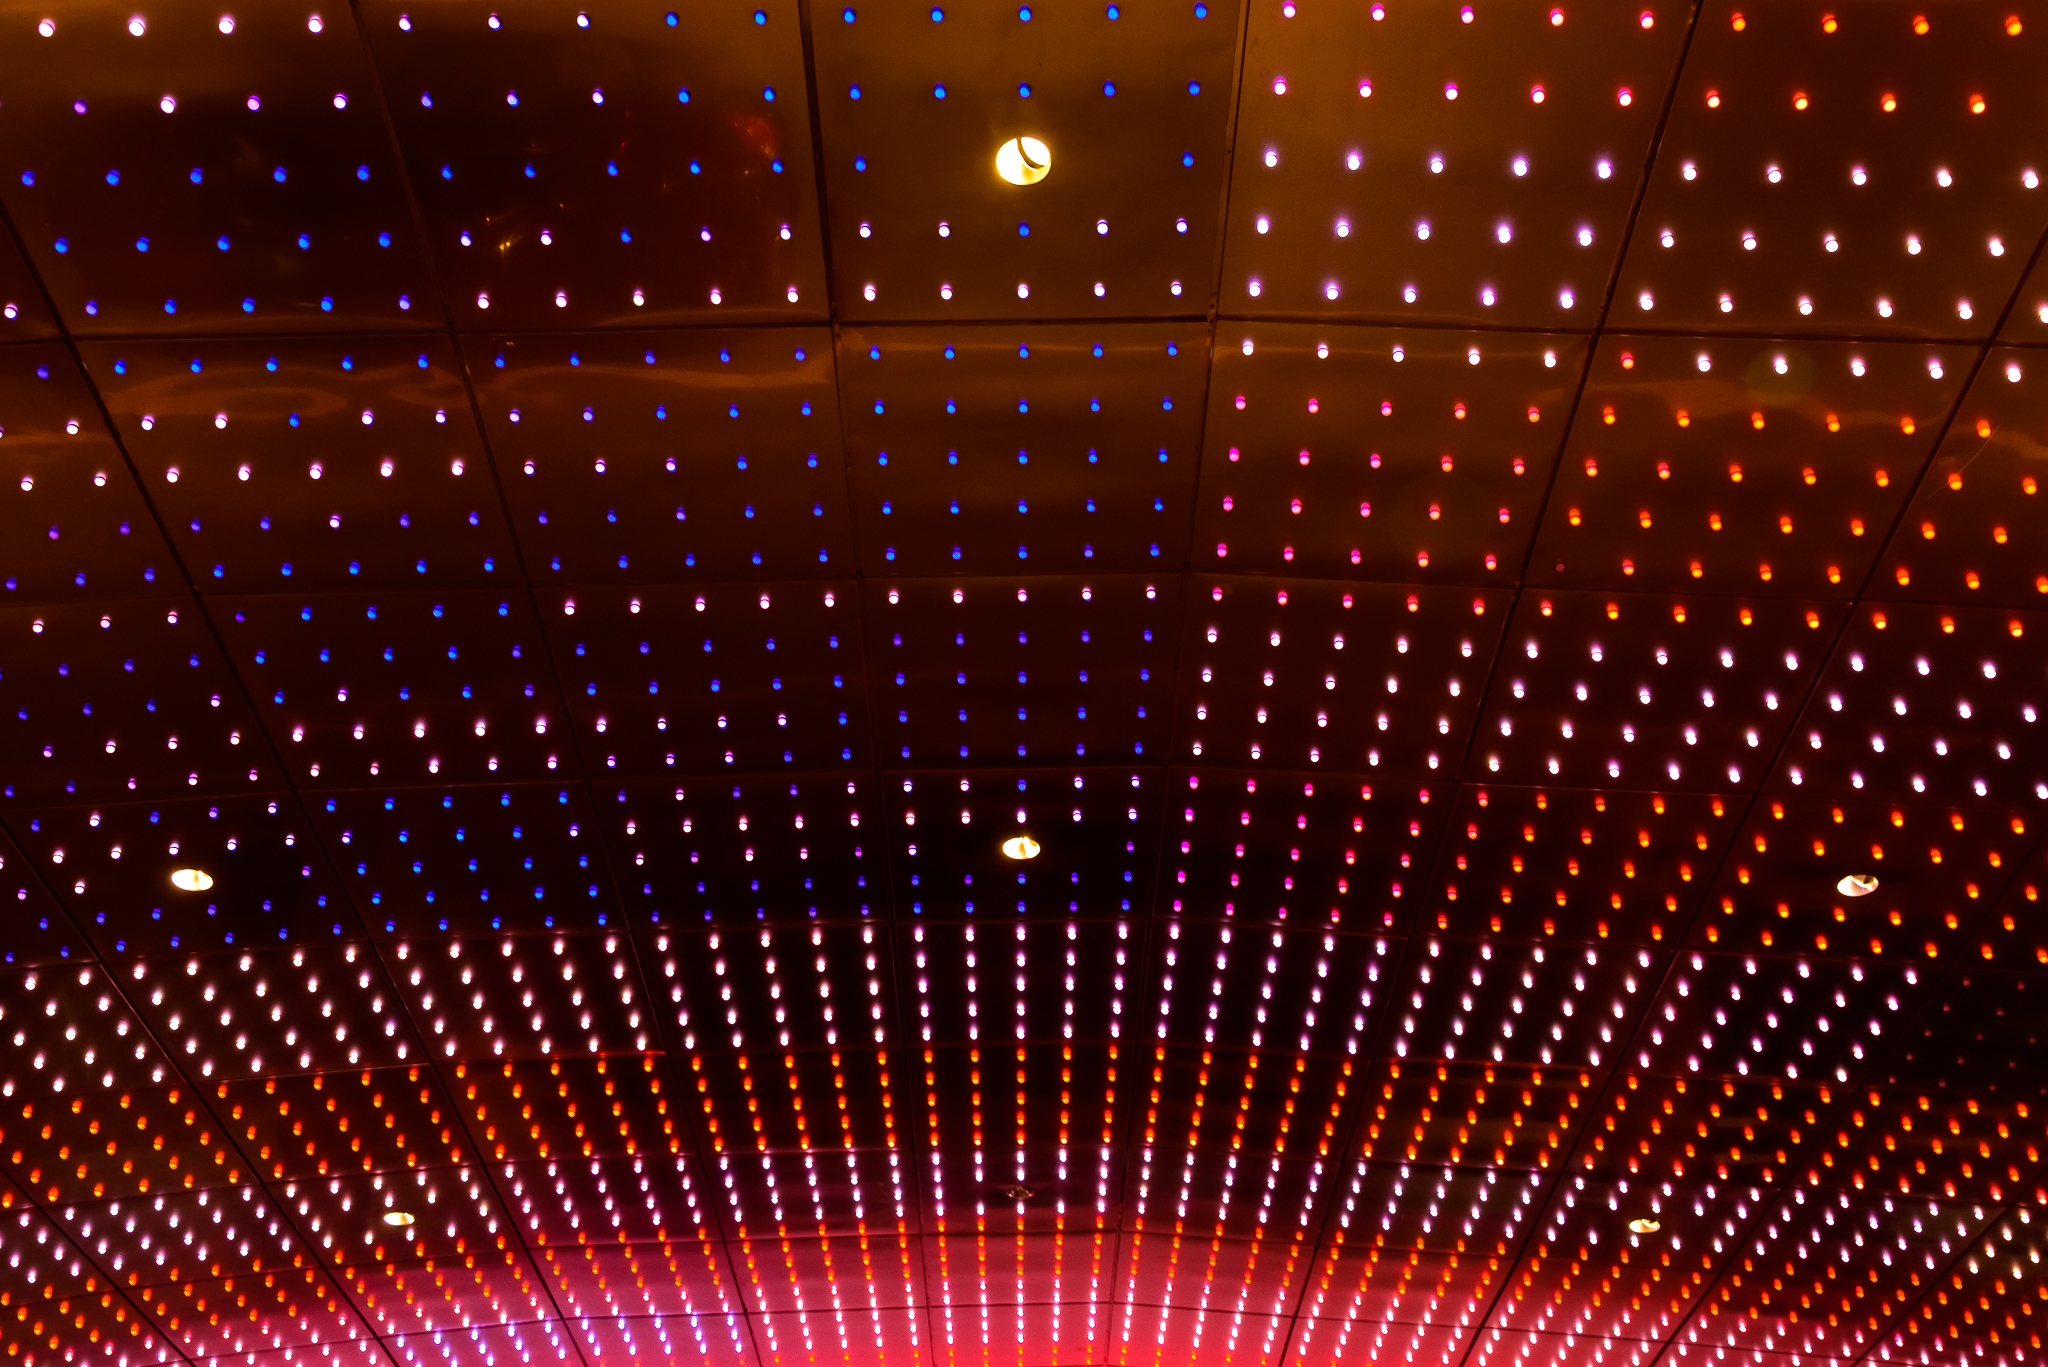 7/4/15. Happy 4th from the Motorcity Casino and their valet's wavy LED lights.